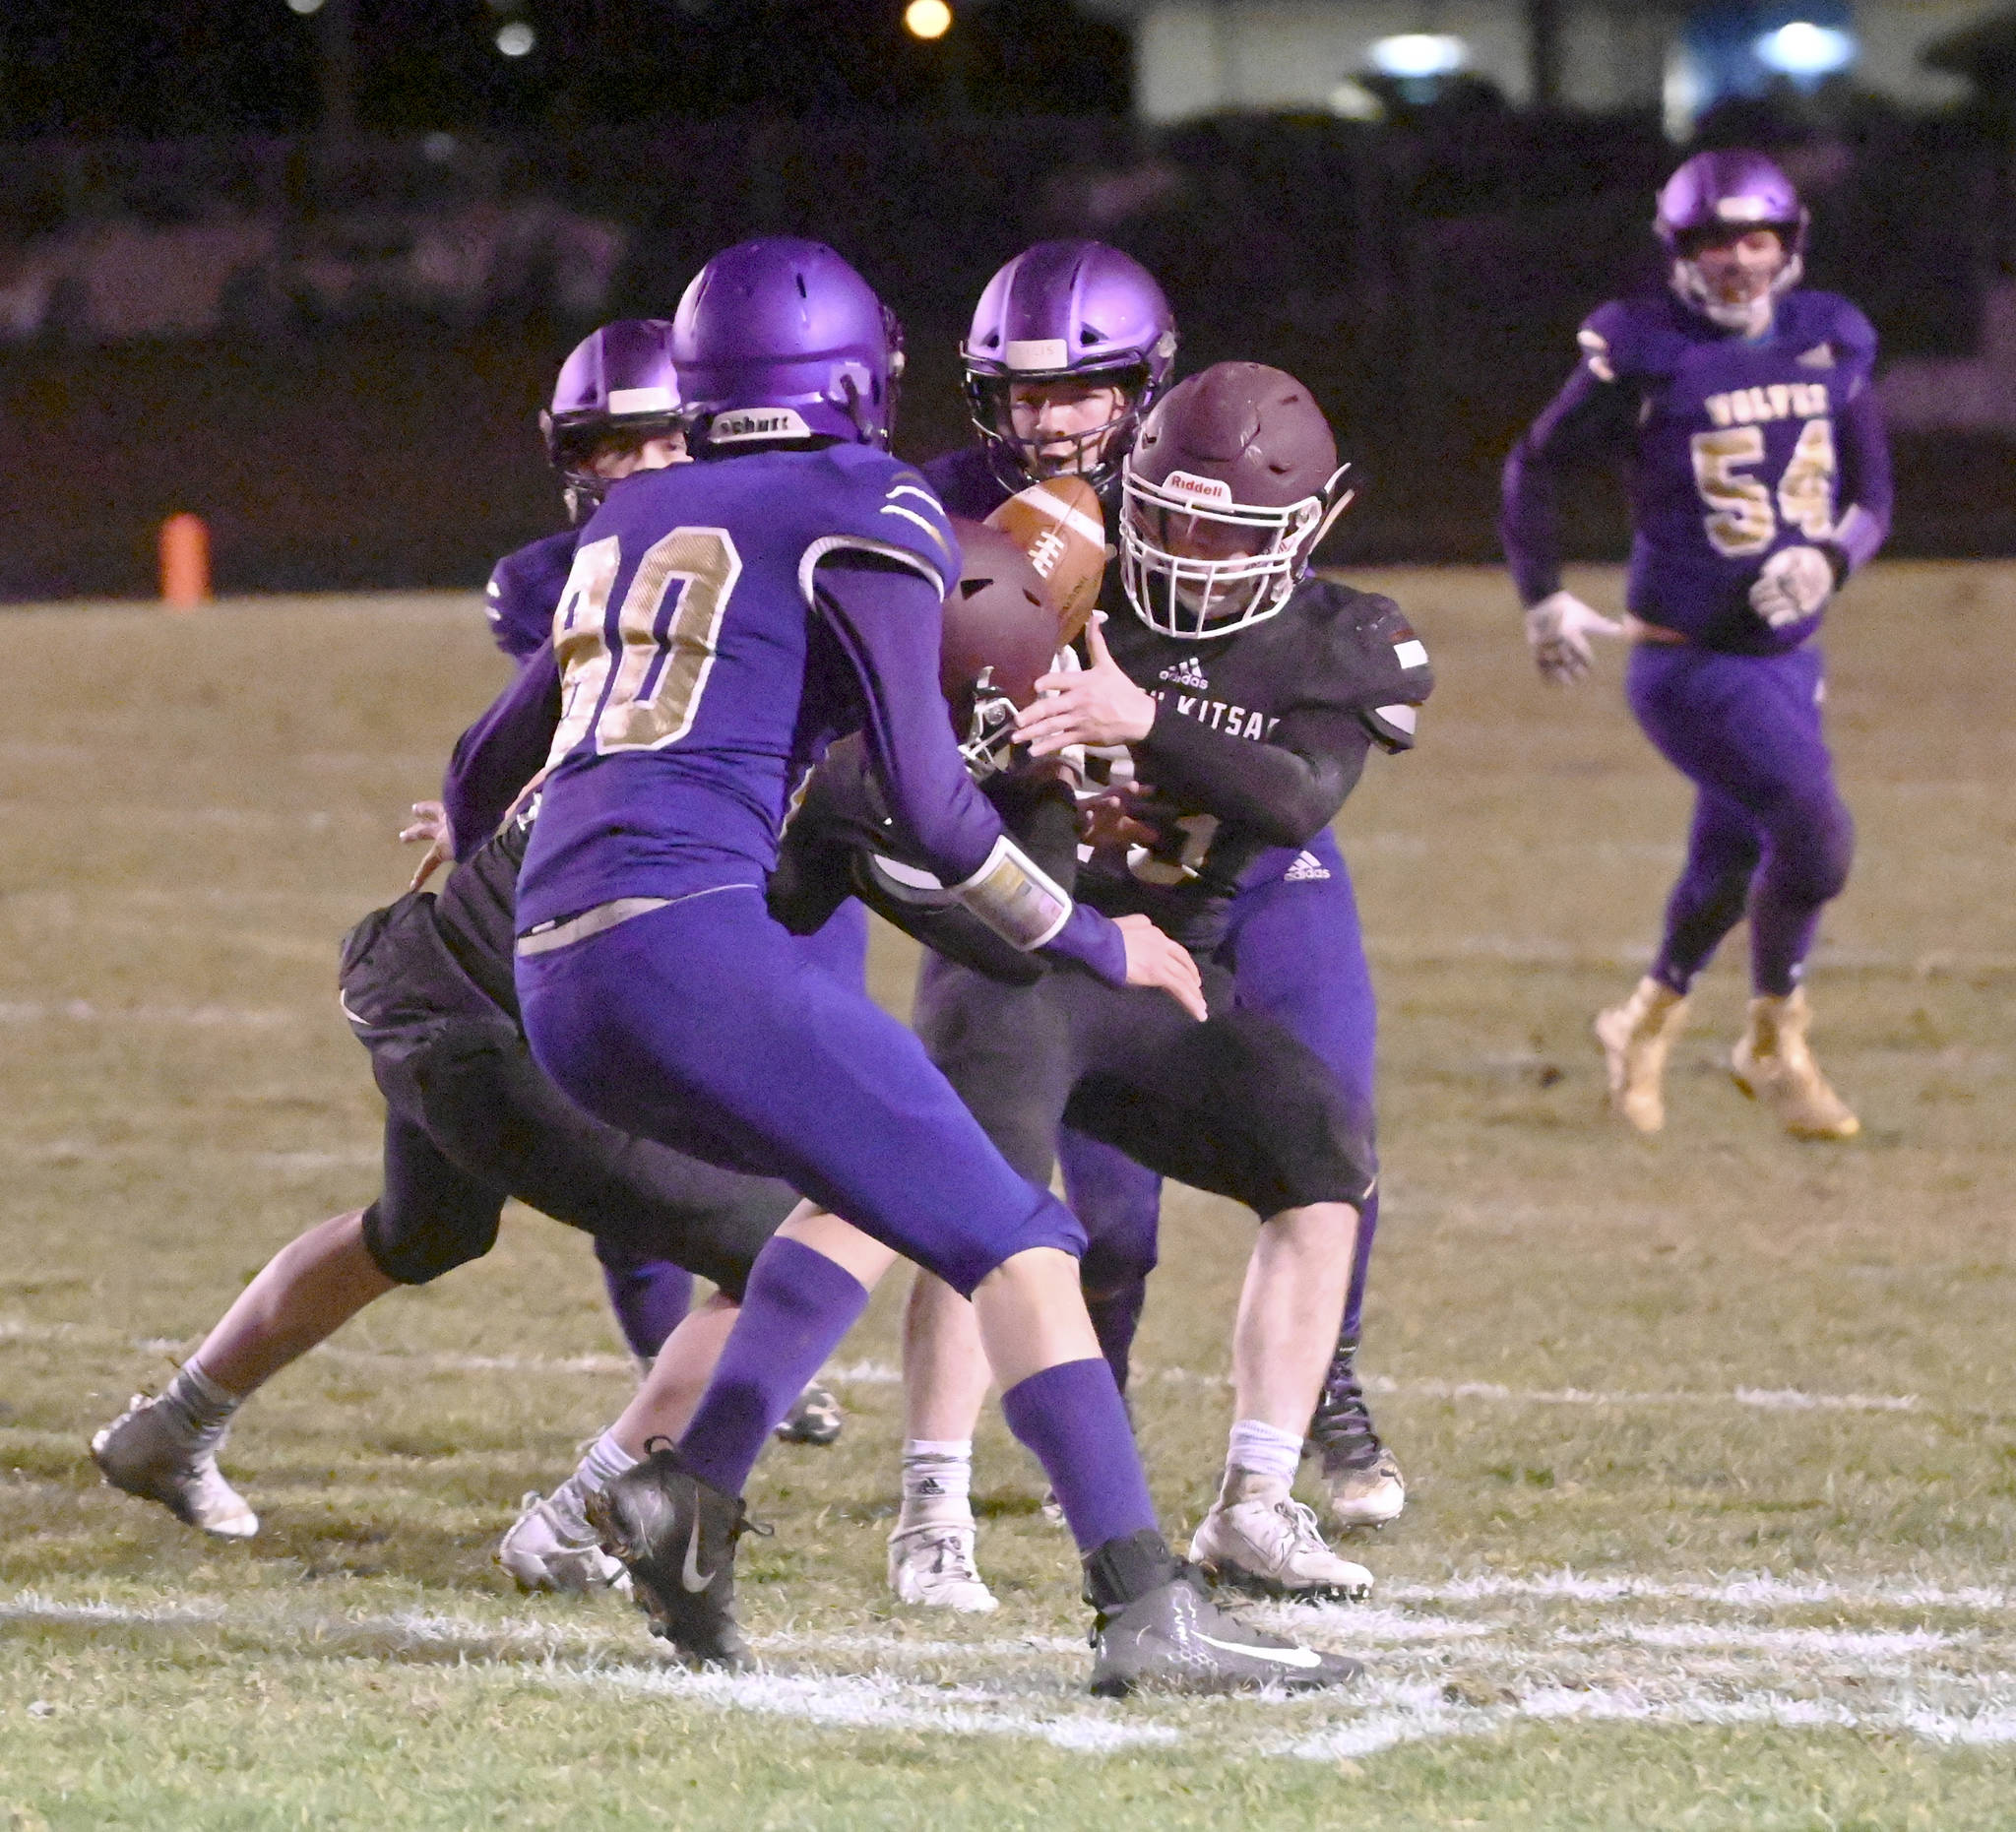 South Kitsap receiver Brayden Segerman tries to get his hands on a pass while surrounded by Sequim defenders. (Michael Dashiell/Sequim Gazette)